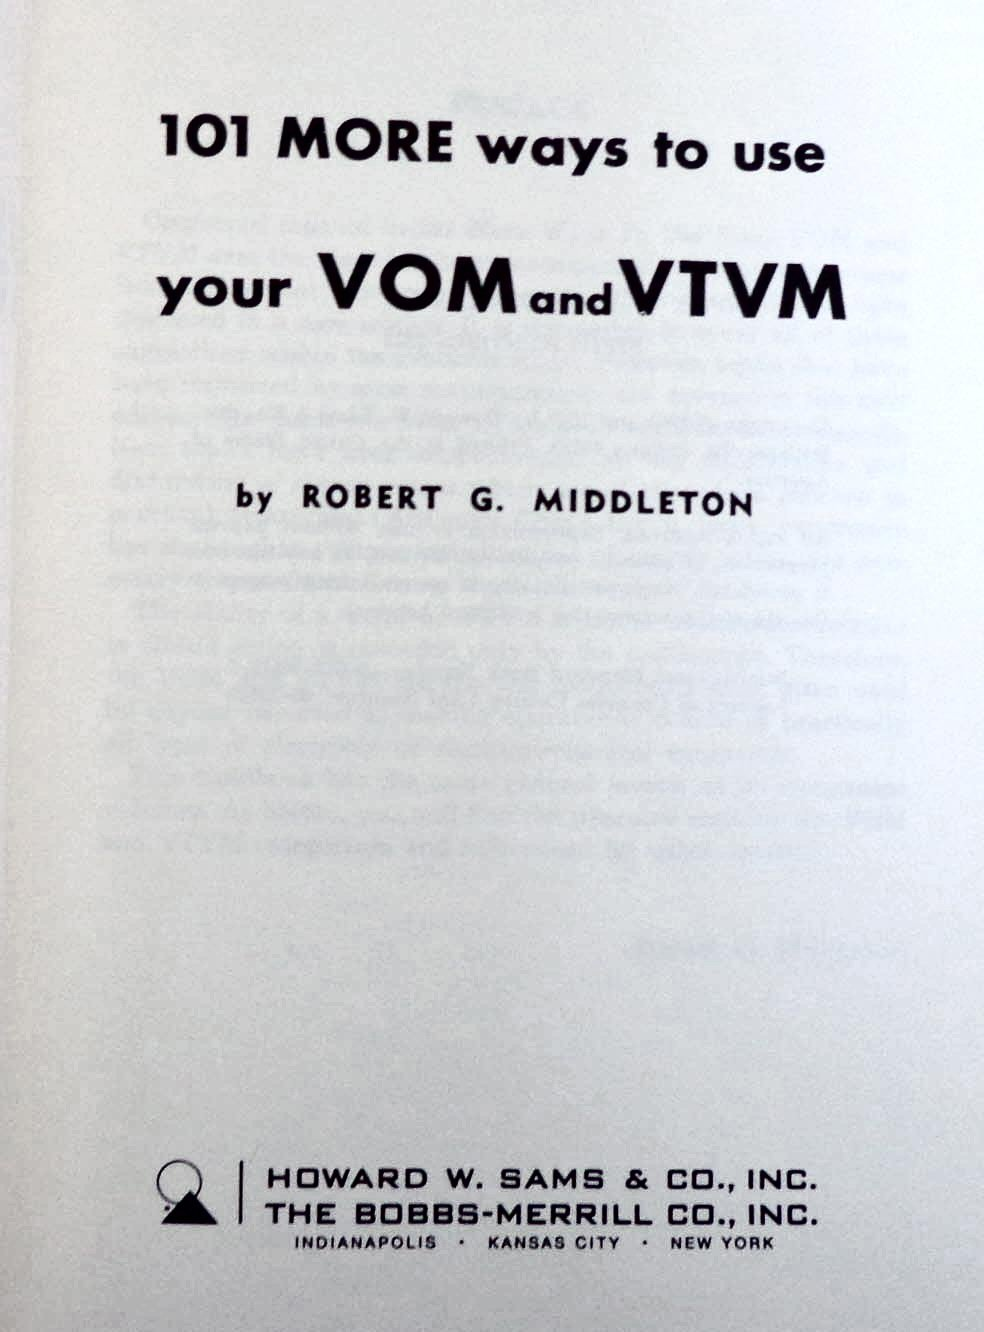 101 Ways to Use Your VOM and VTVM: Robert G. Middleton: 9780672205101:  Amazon.com: Books